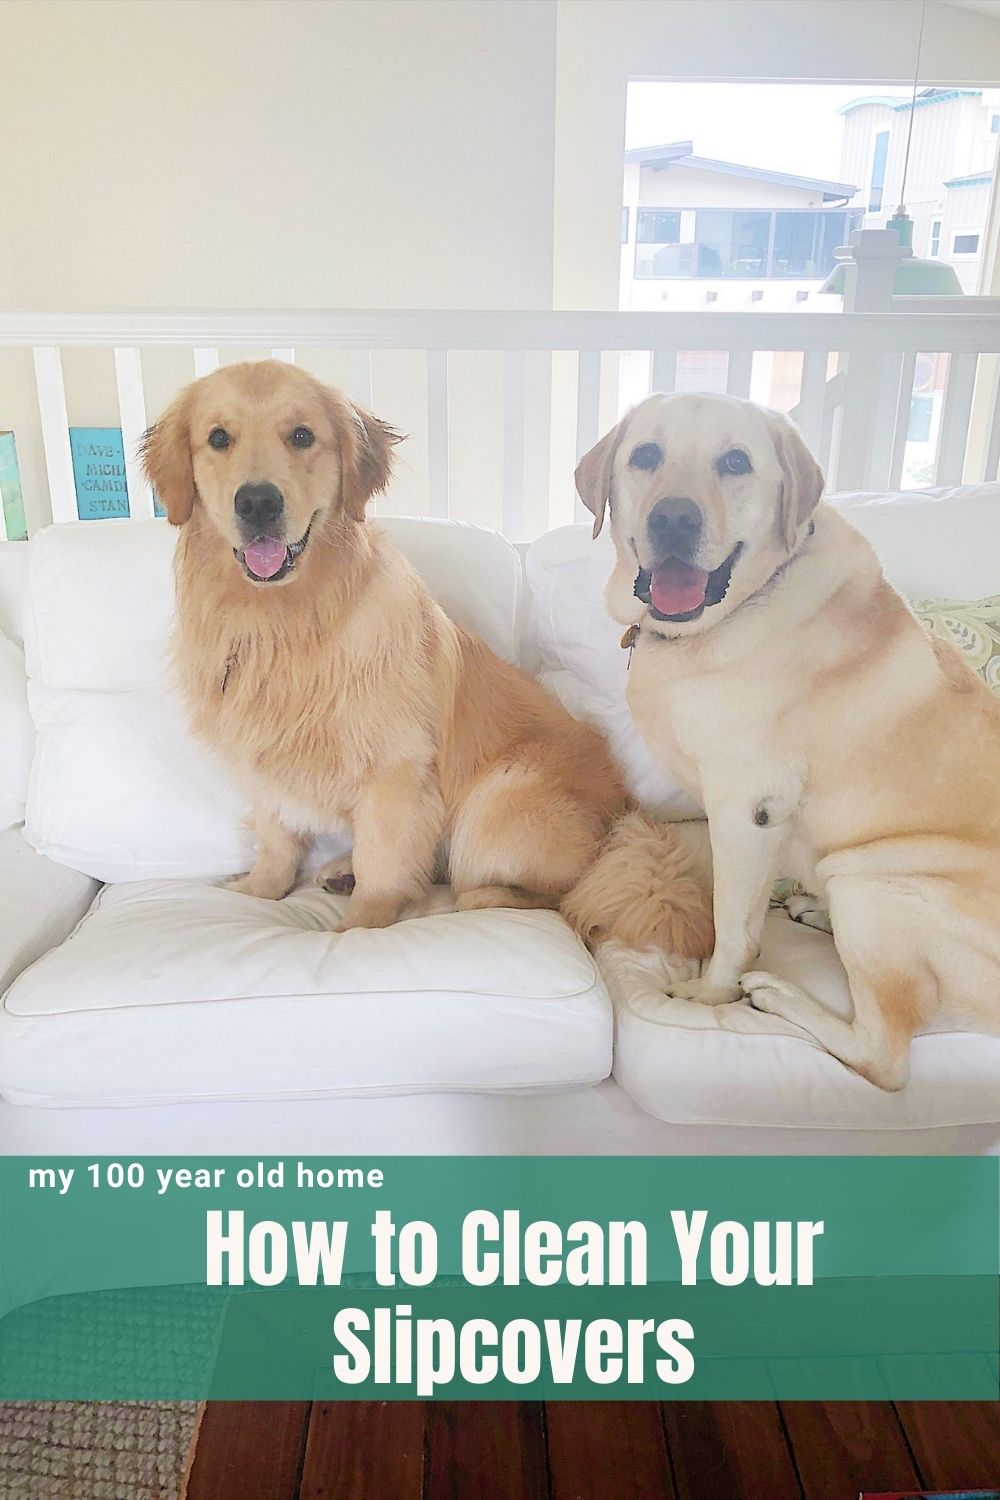 Have you ever wondered how to clean slipcovers? Today I am sharing how I wash our IKEA slipcovers. This method works every time.